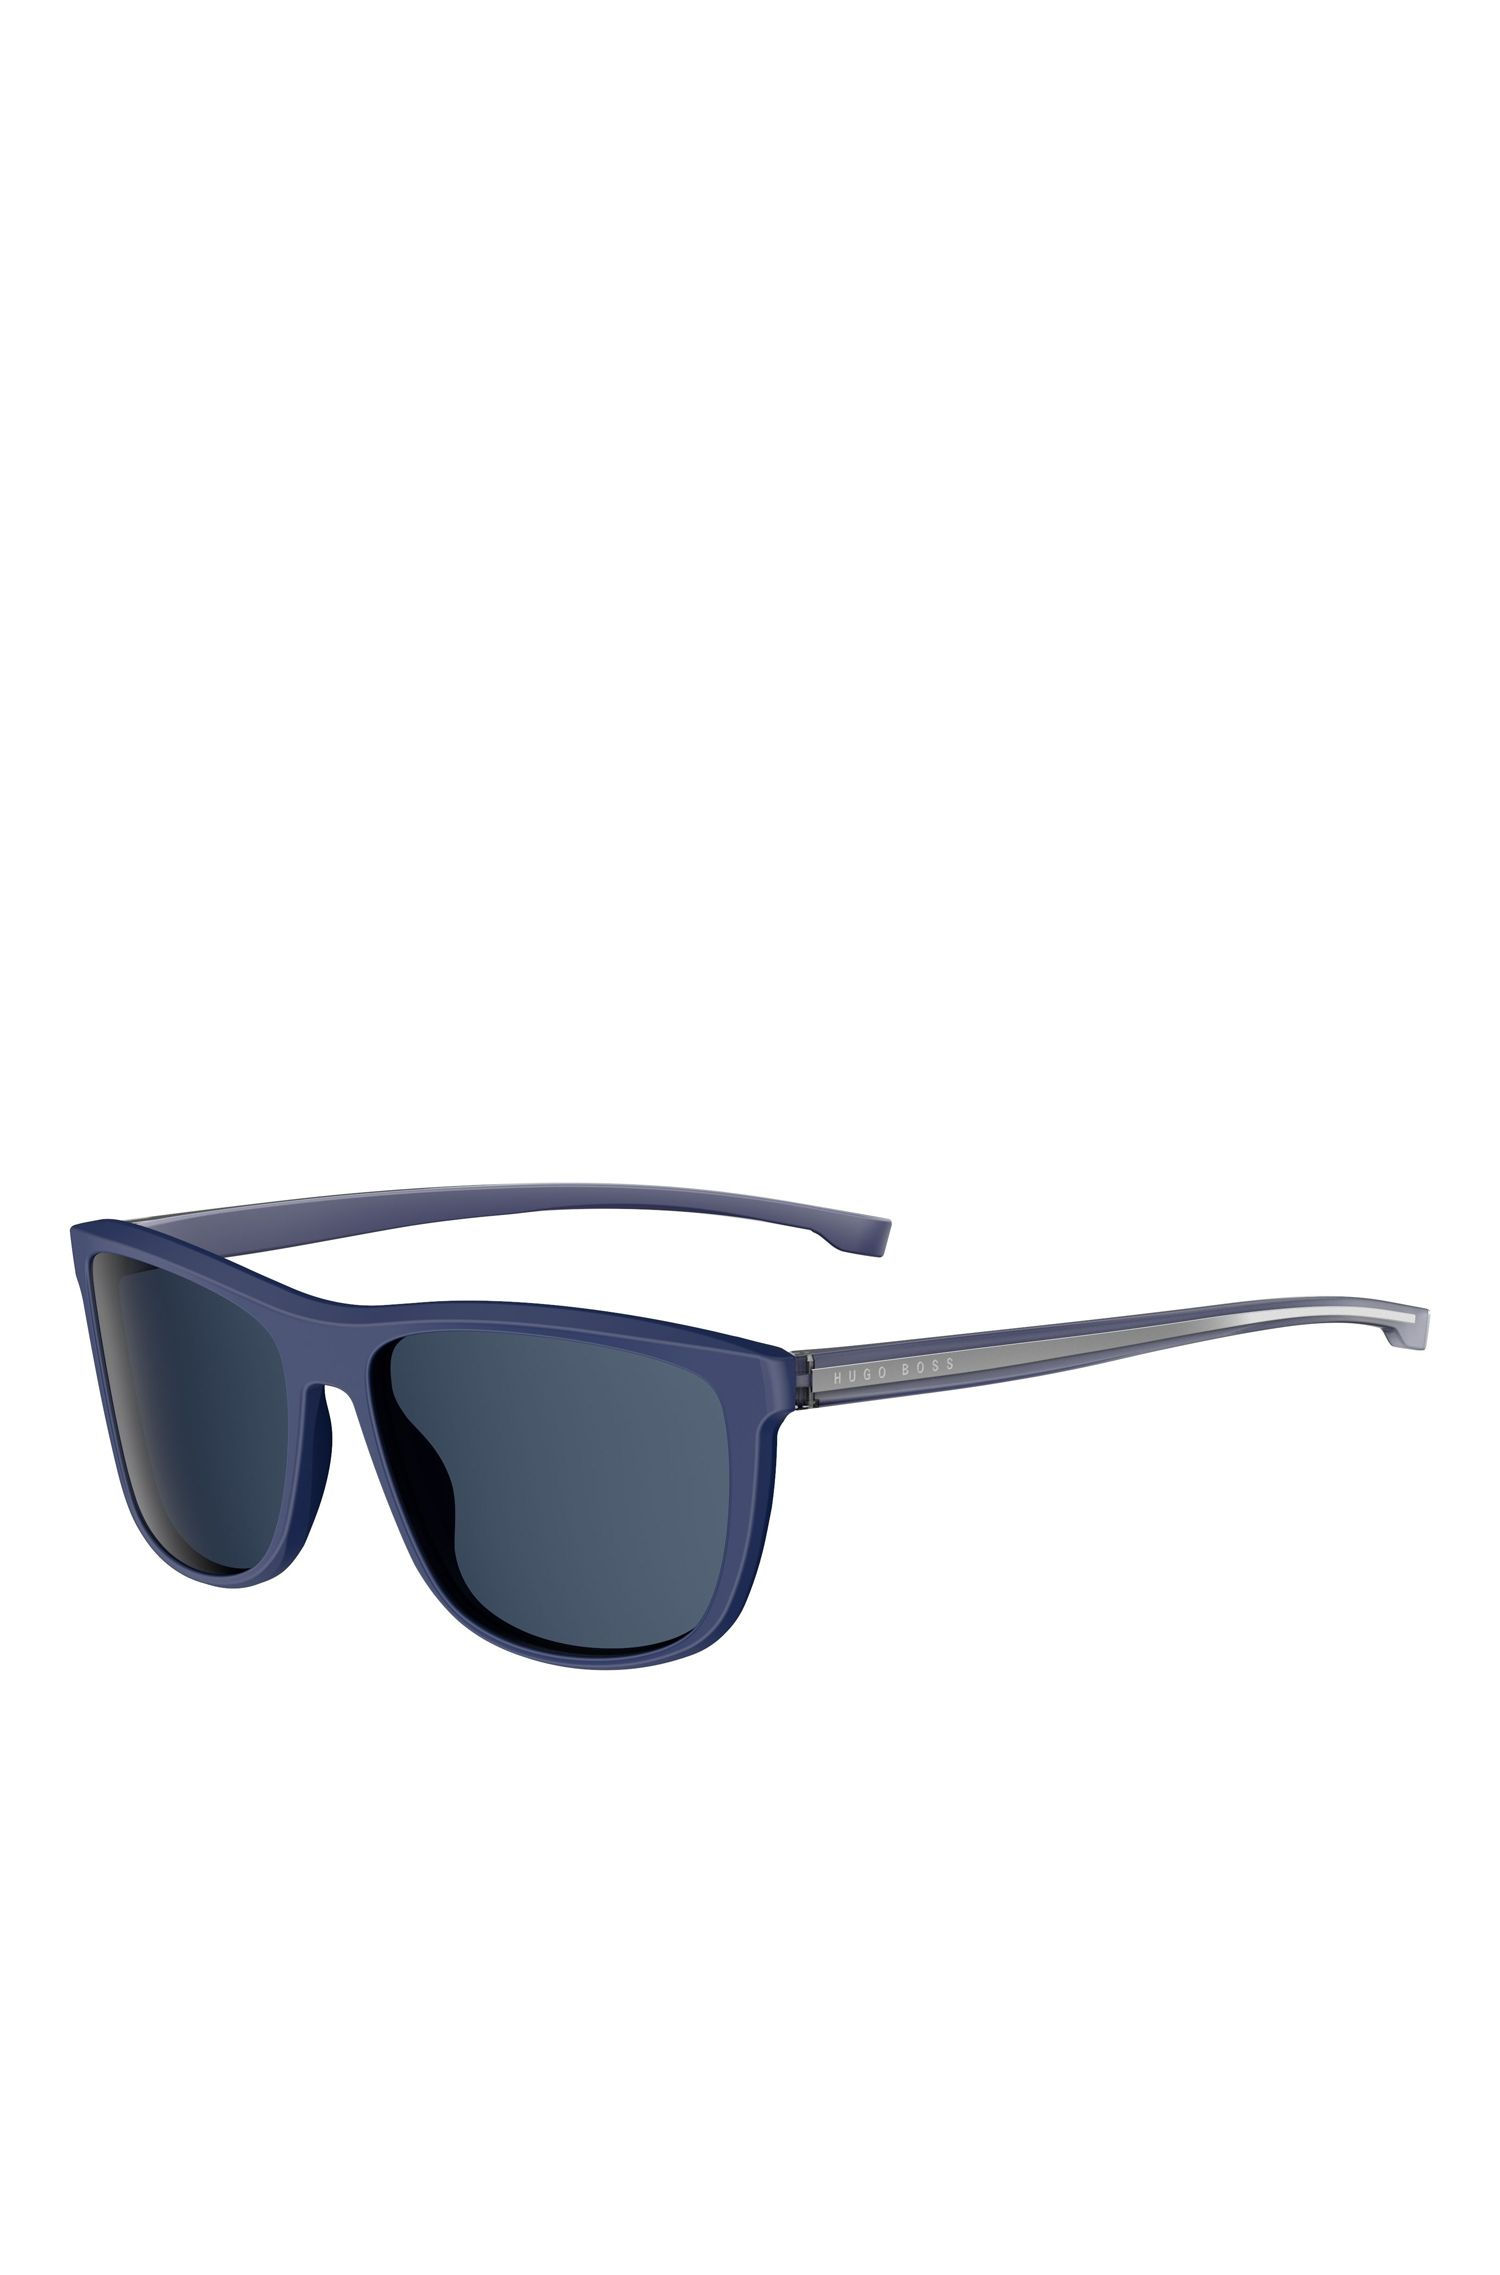 Blue Lens Top Bar Sunglasses | BOSS 0874S